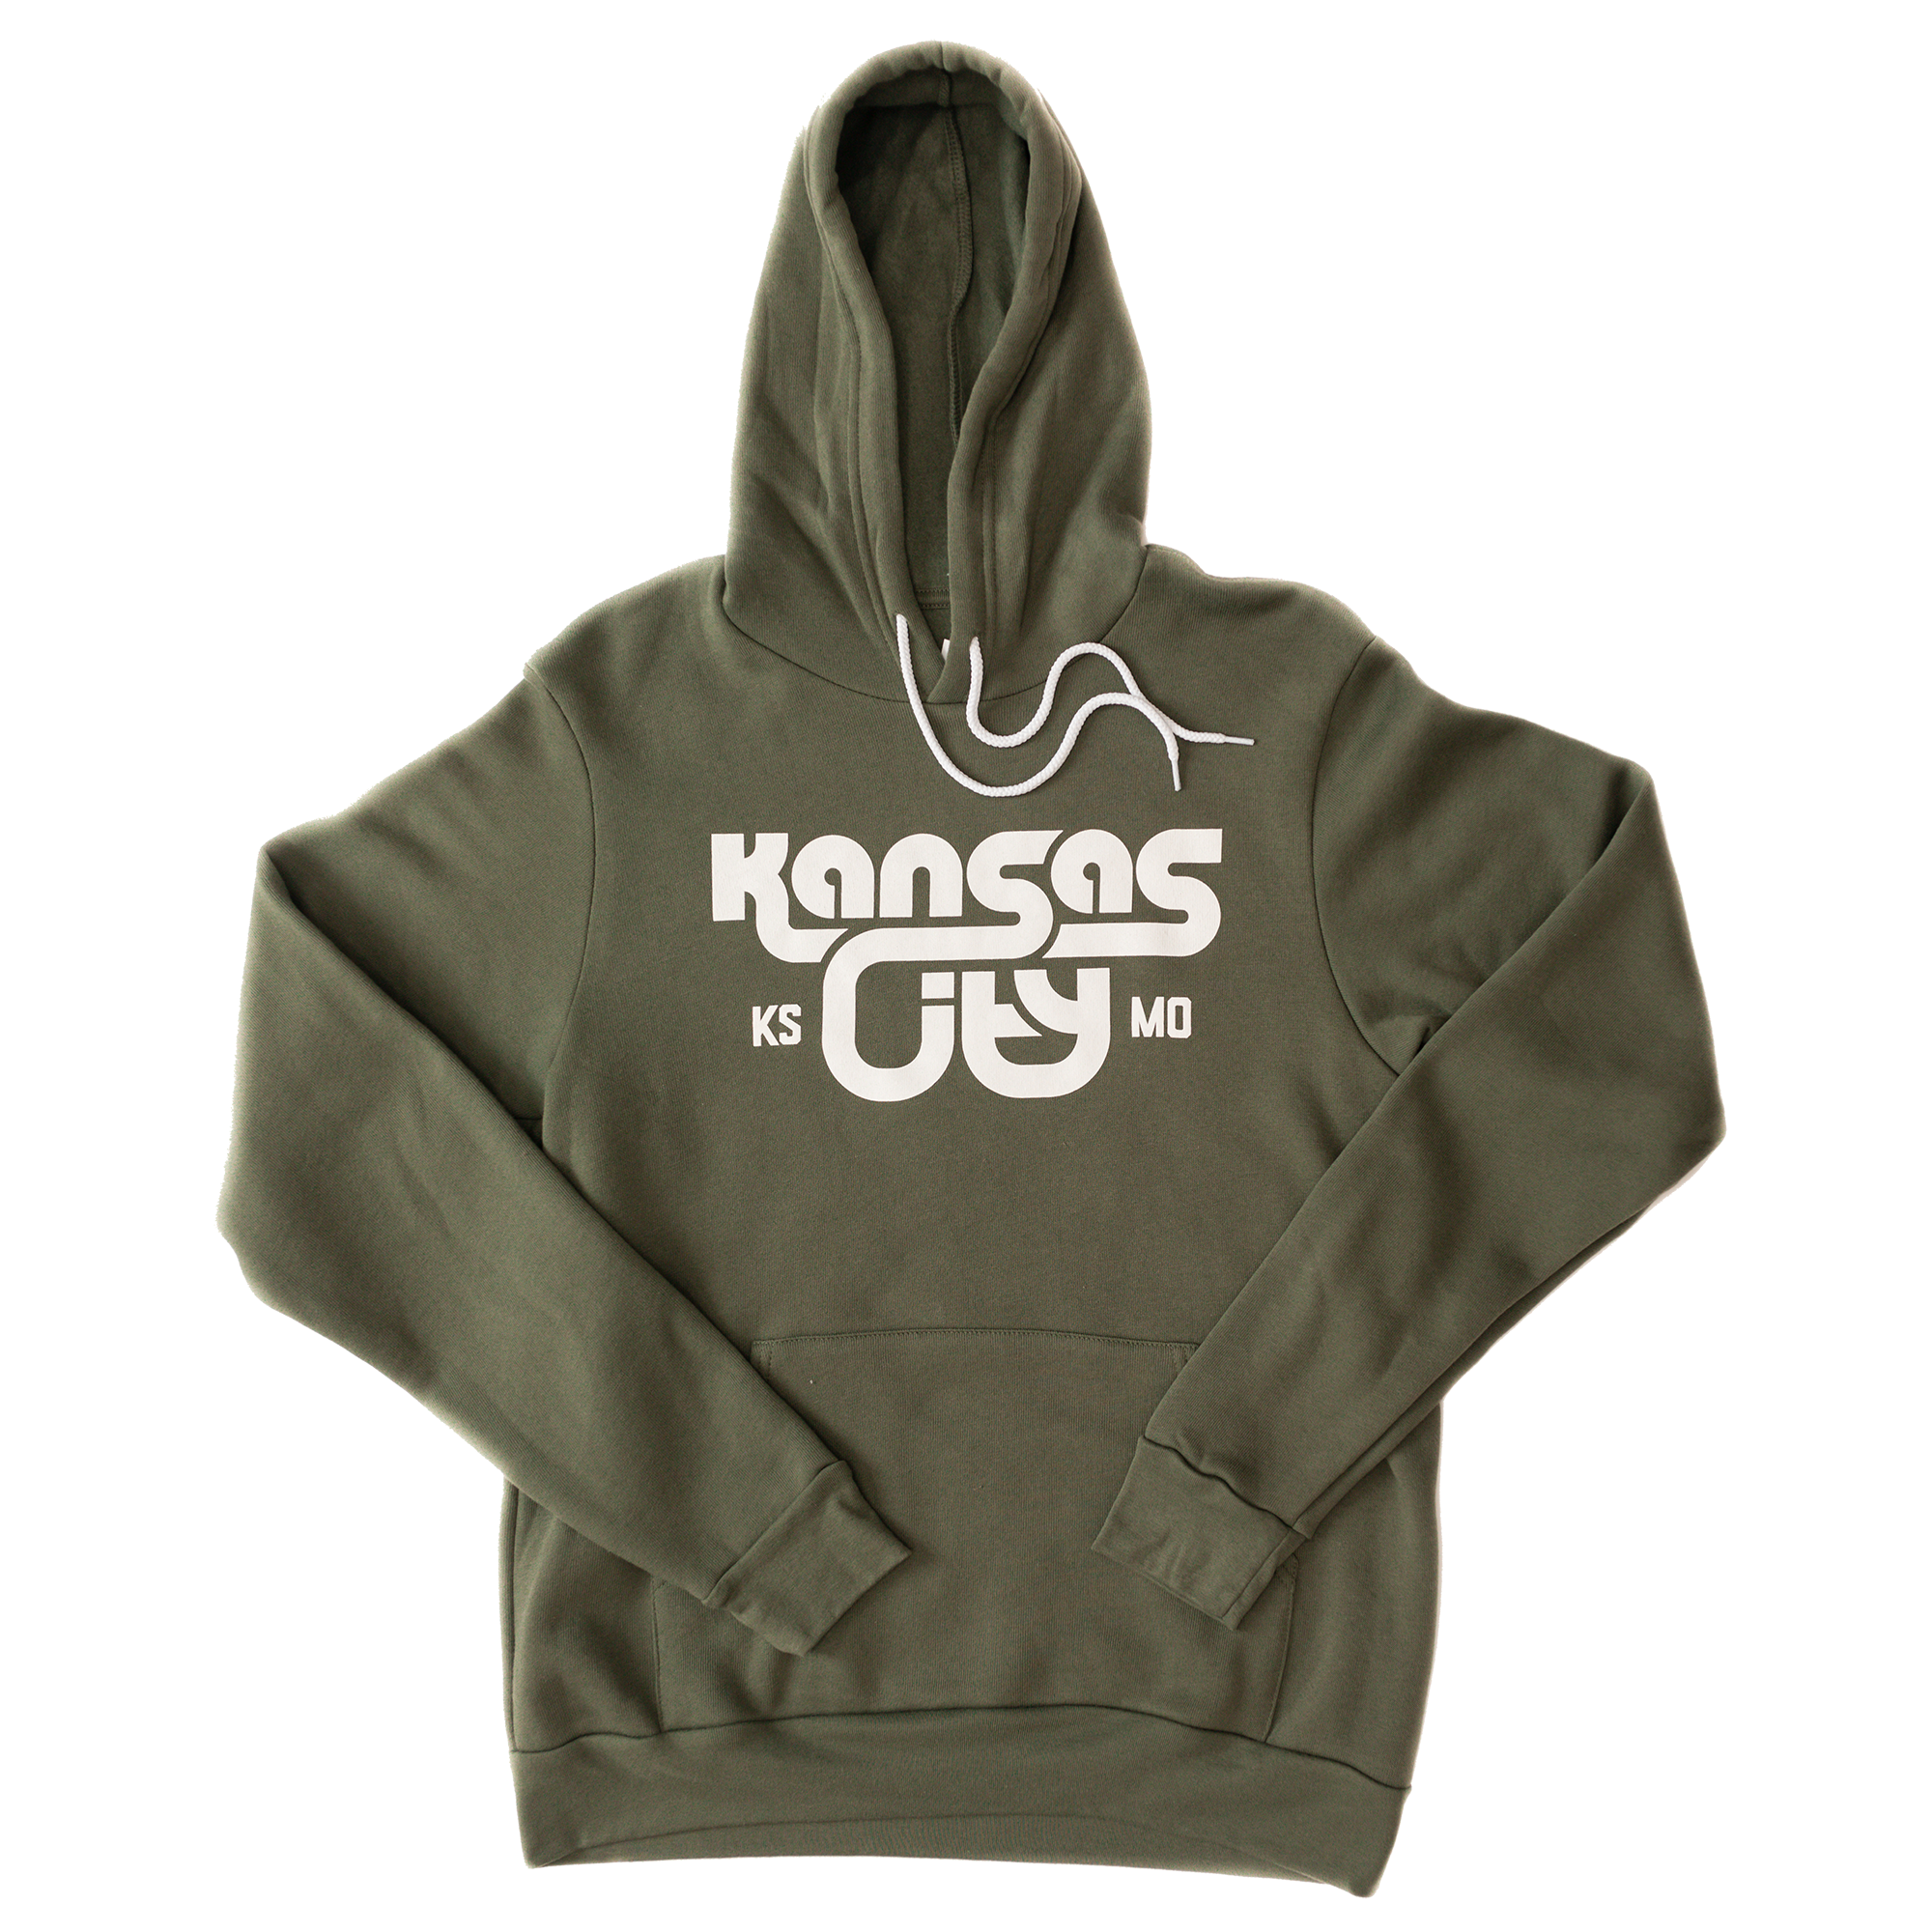 KCK/MO | Military Green Unisex Hoodie